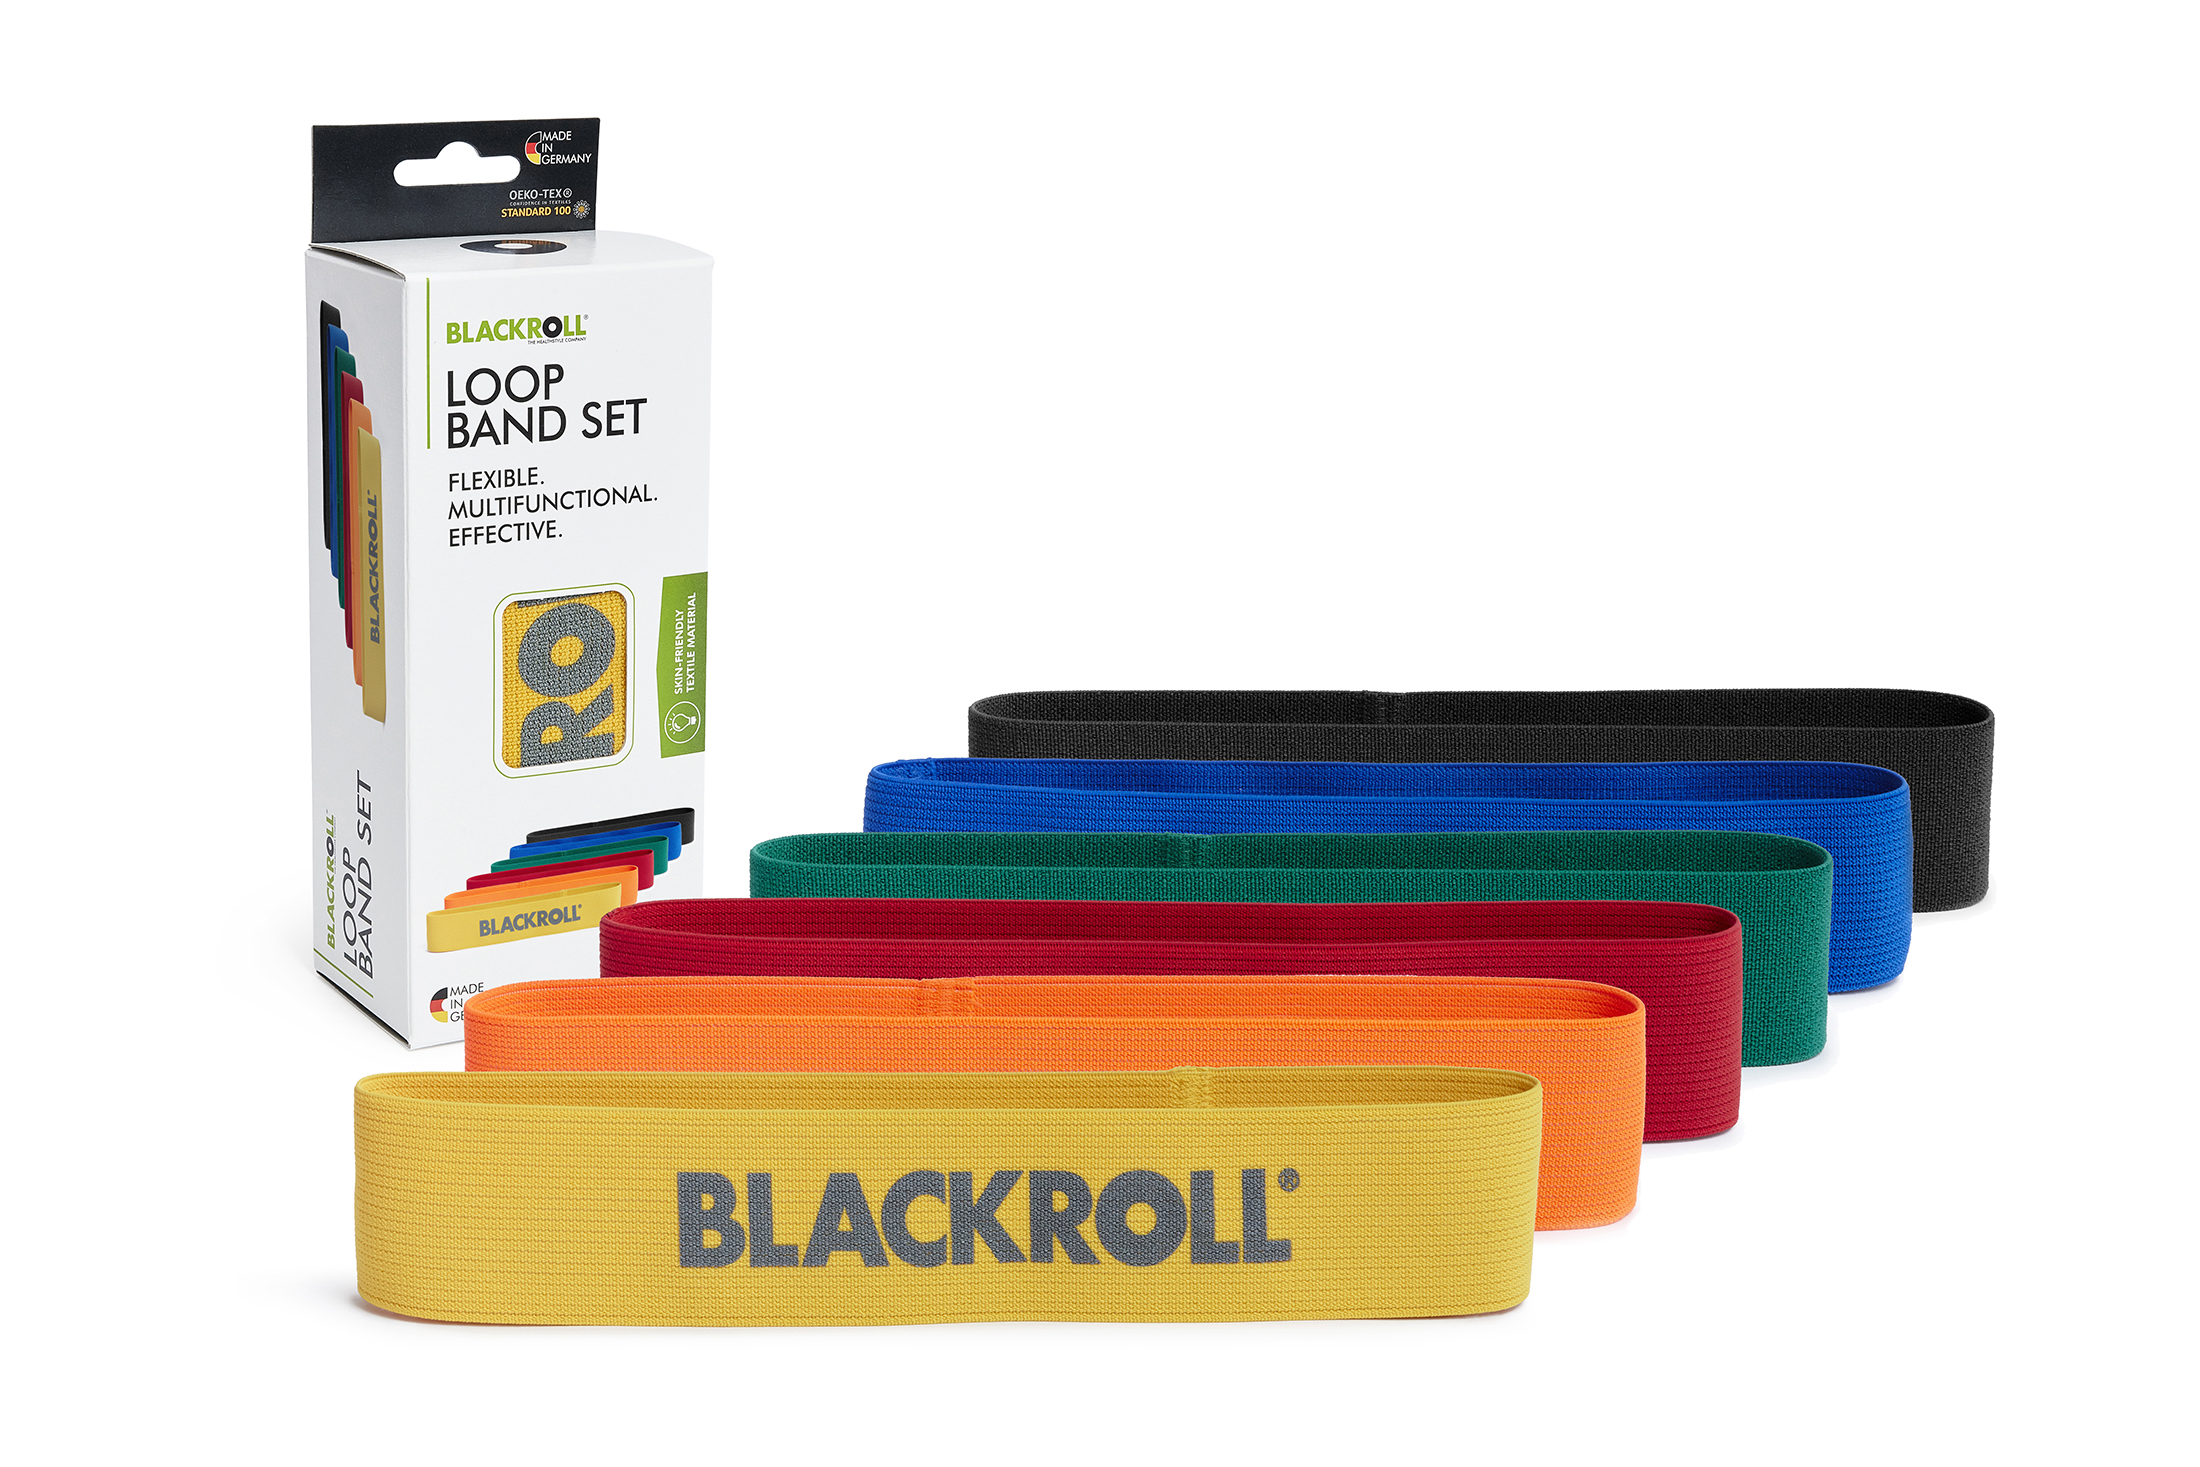 BLACKROLL® LOOP BAND SET 6ER yellow, orange, red, green, blue, black